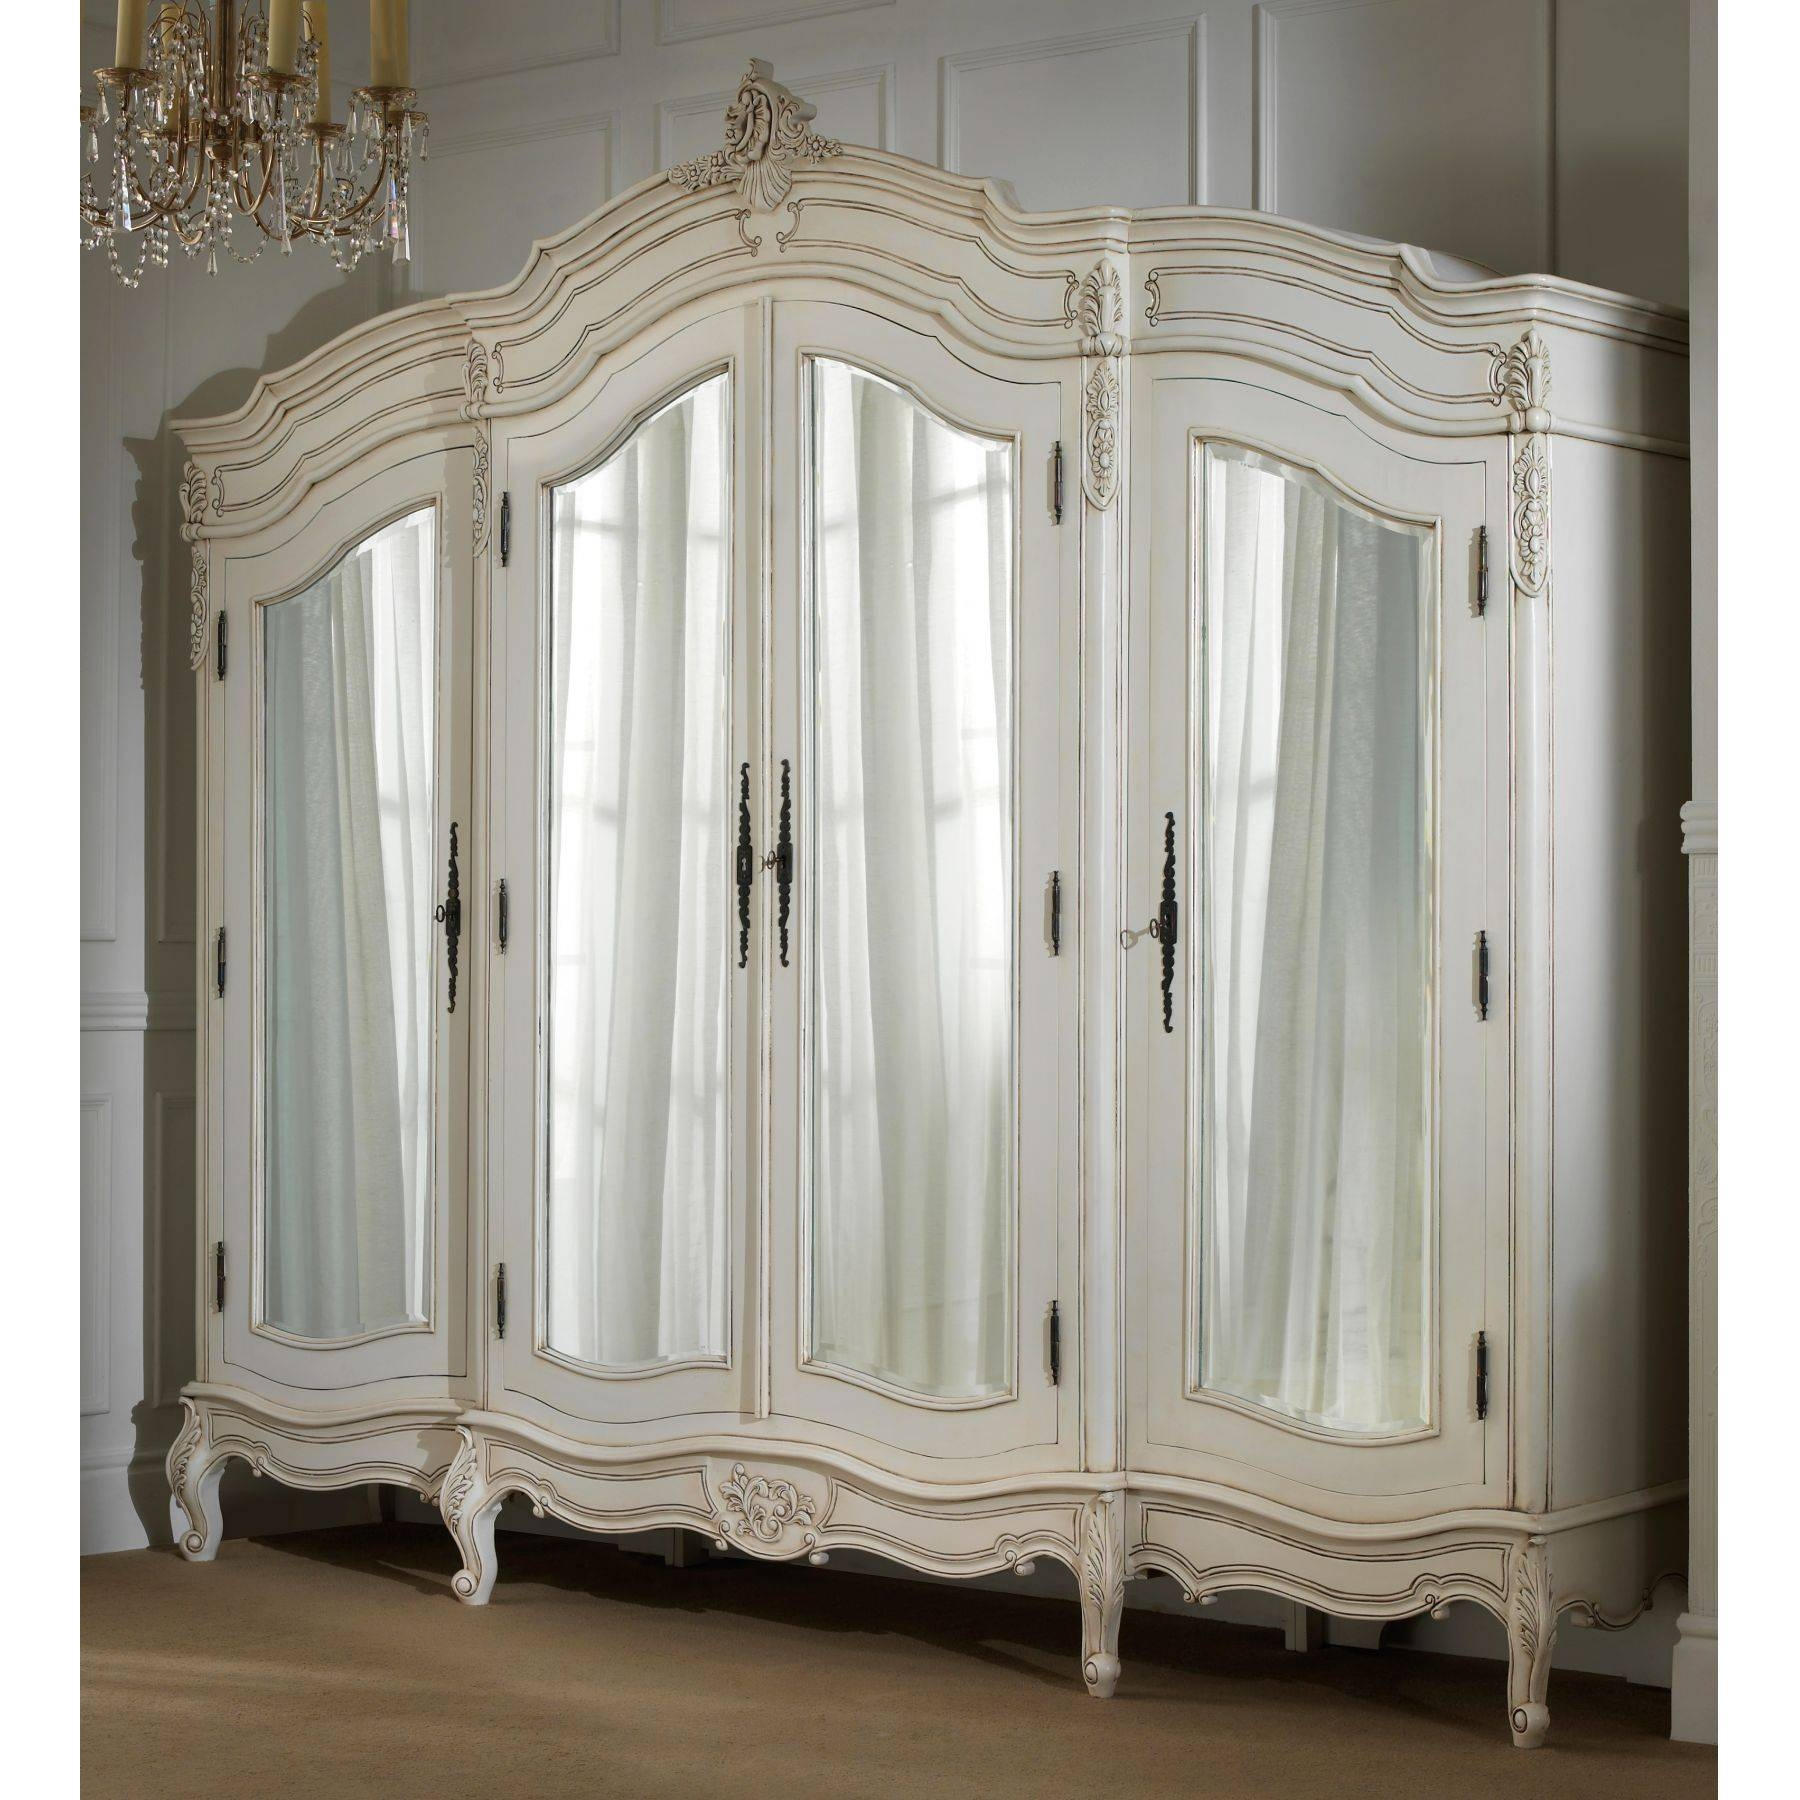 Bedroom : Antique Bedroom French Bedroom Furniture Vintage Style pertaining to Victorian Style Wardrobes (Image 6 of 15)